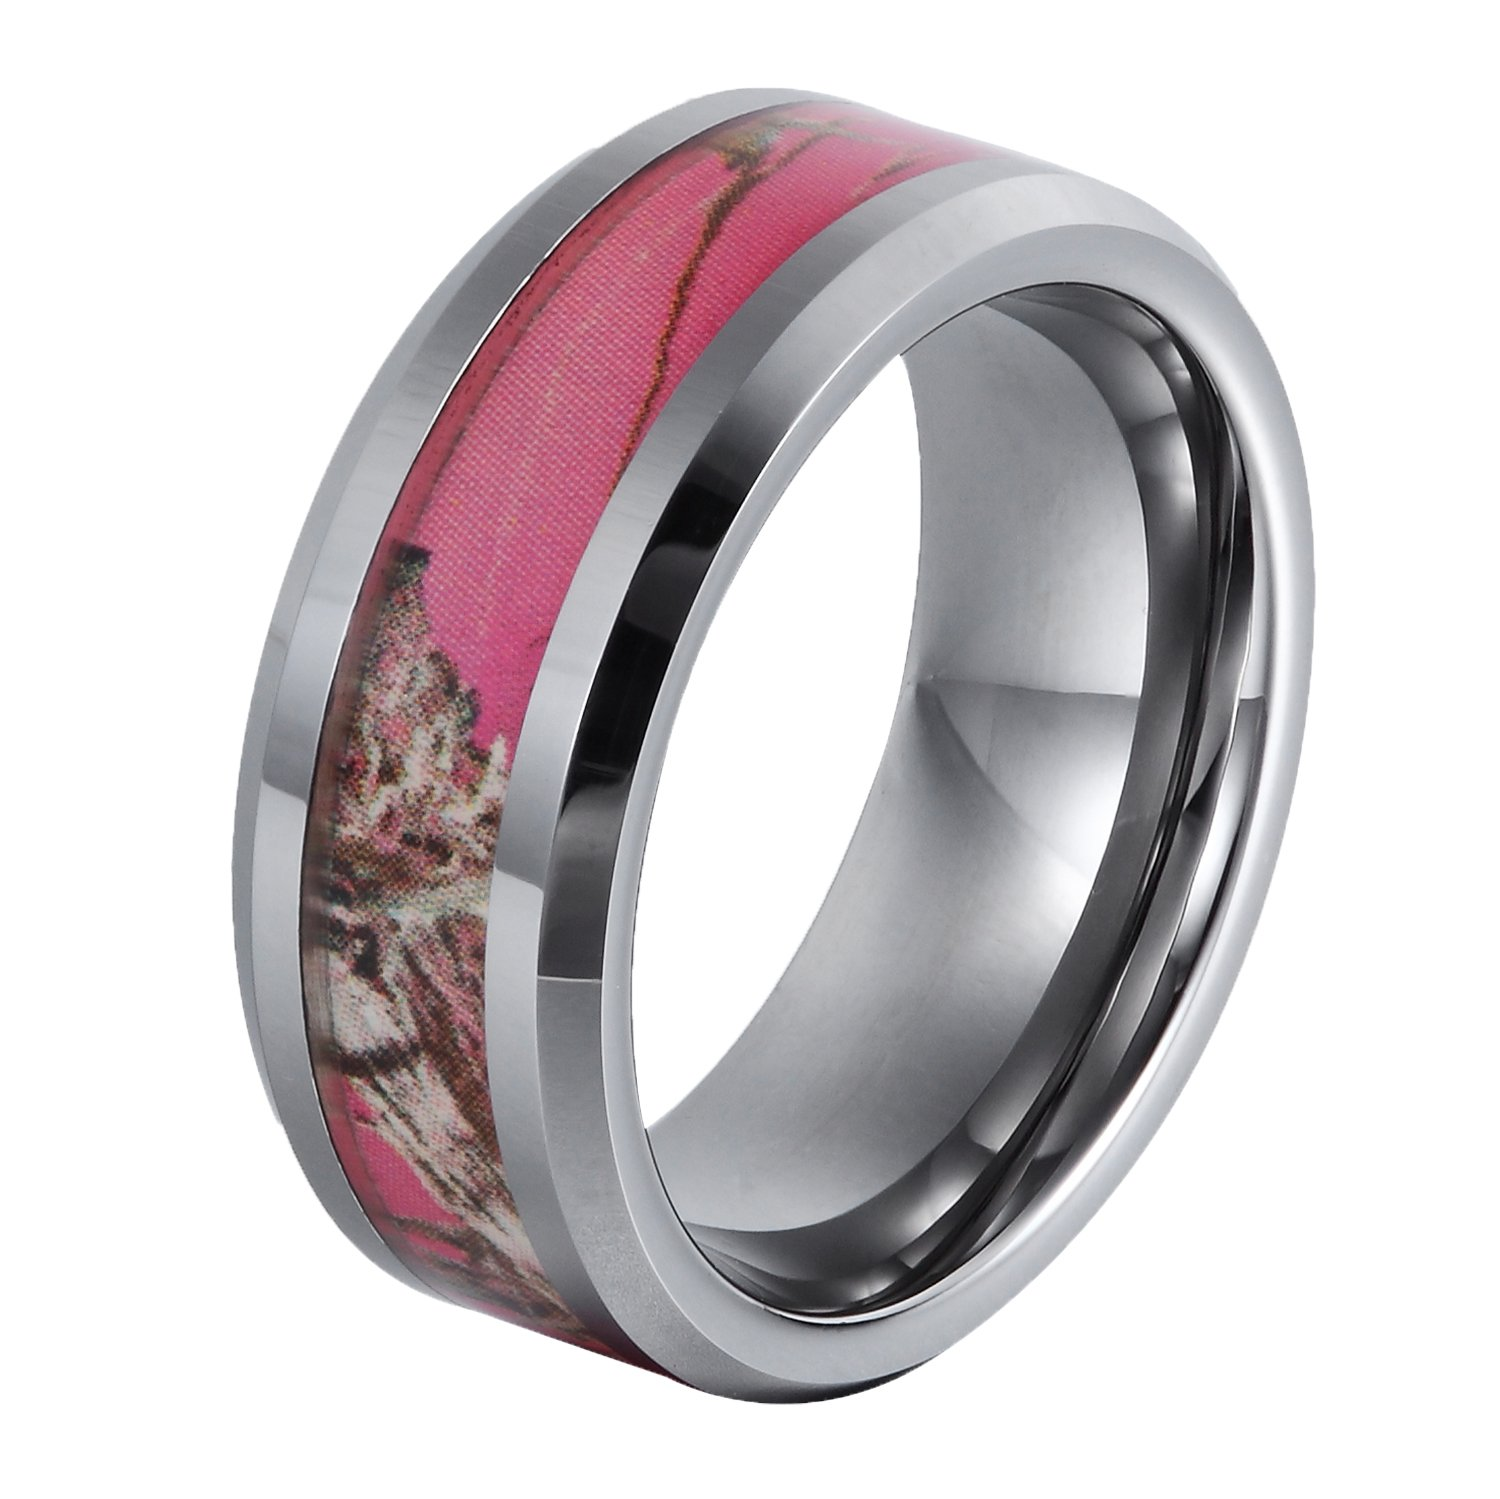 GER 8mm Tungsten Ring Gift Camo Hunting Camouflage Pink Tree Women's Wedding Band,Size 8